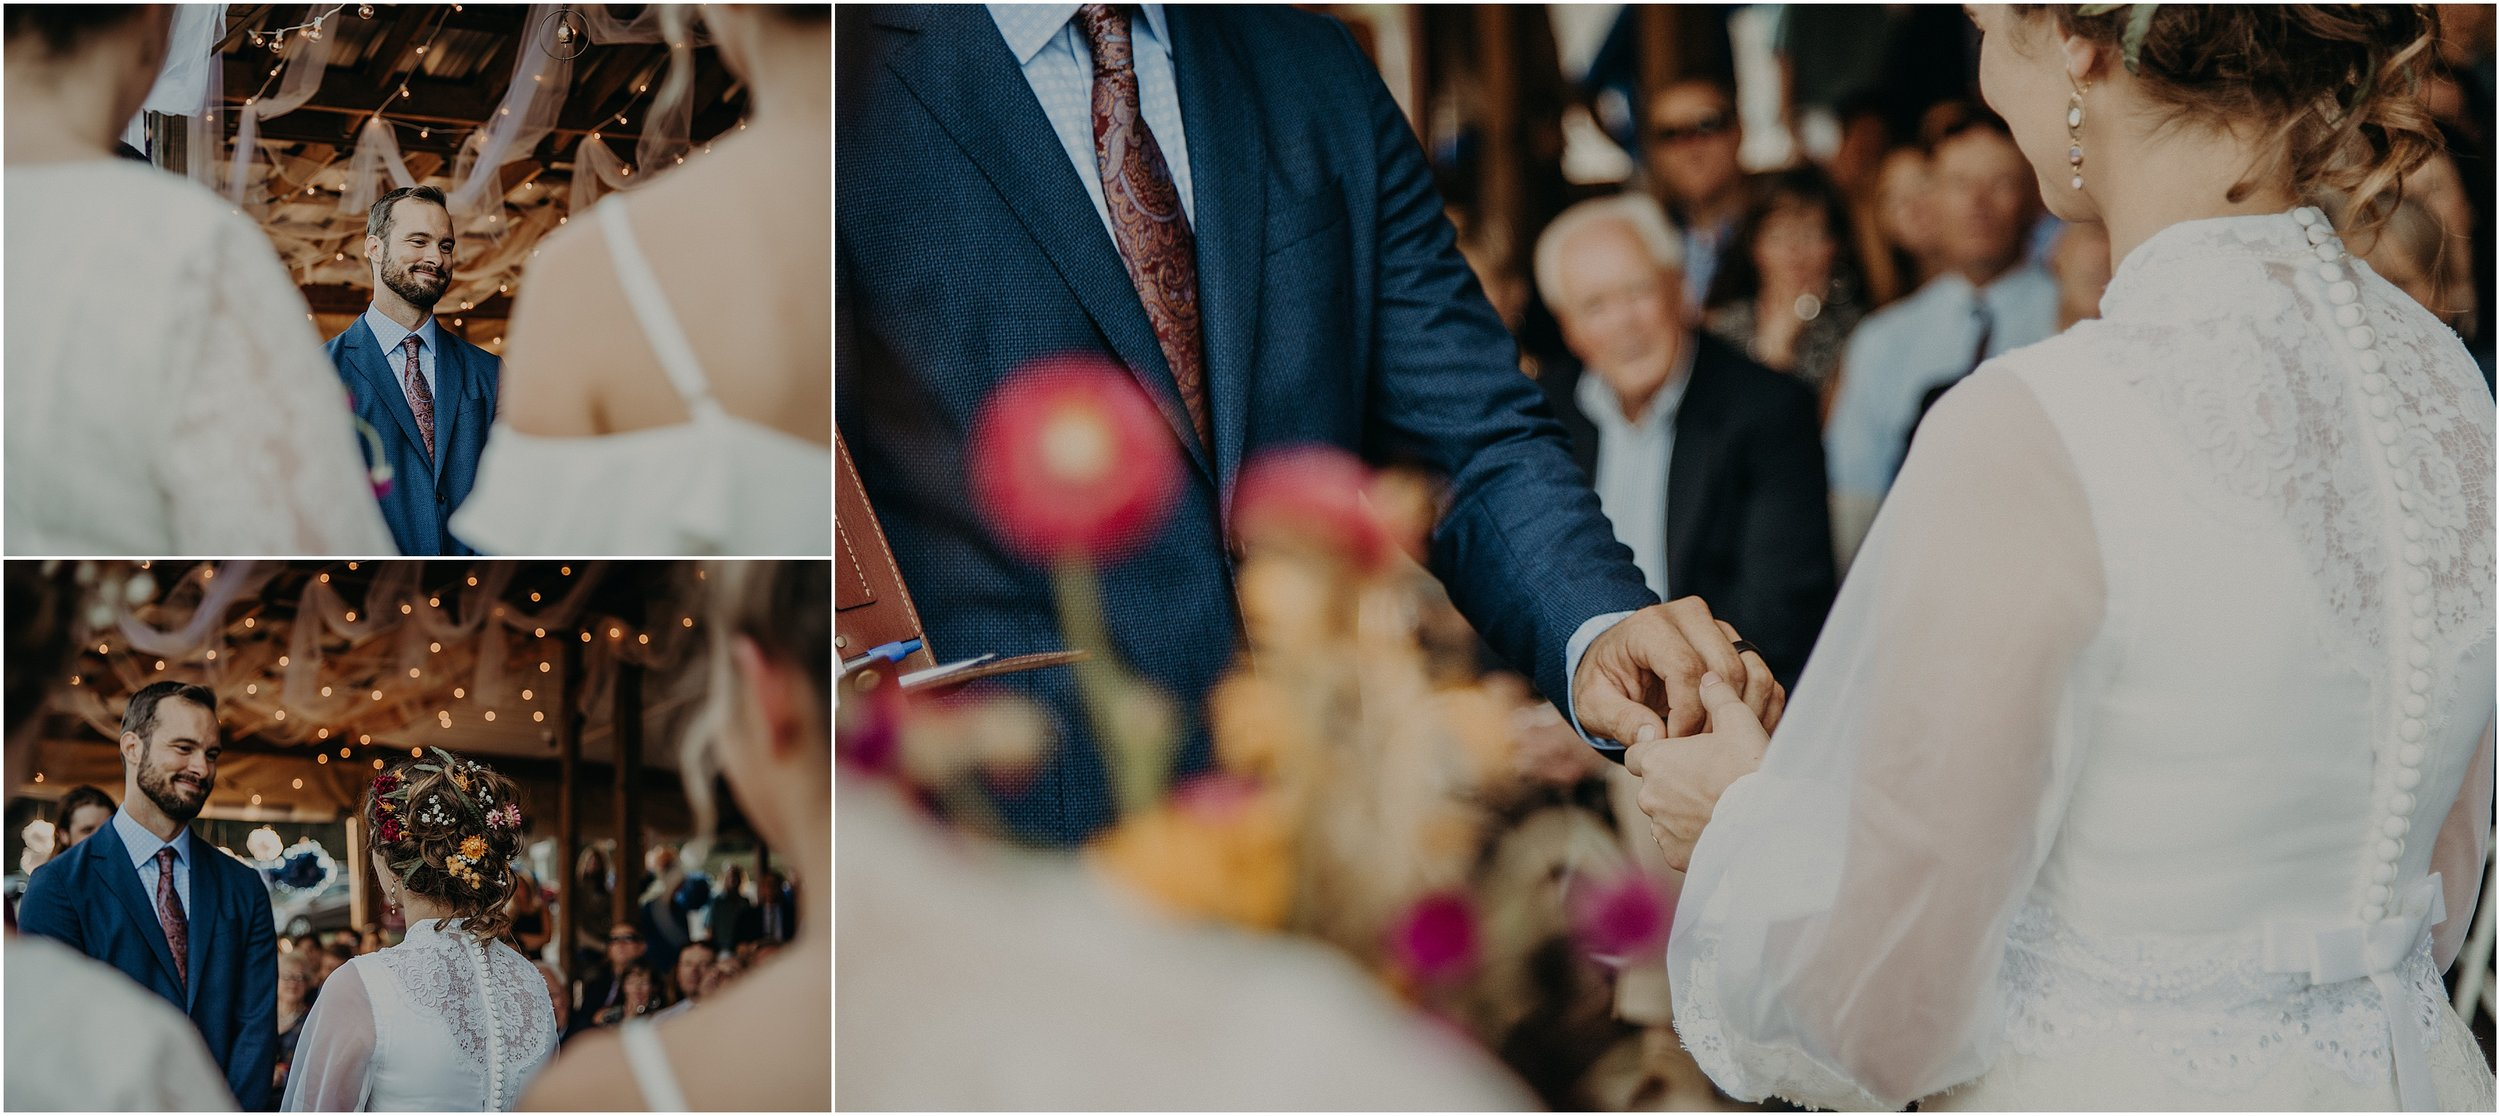 Exchanging rings between the bride and groom